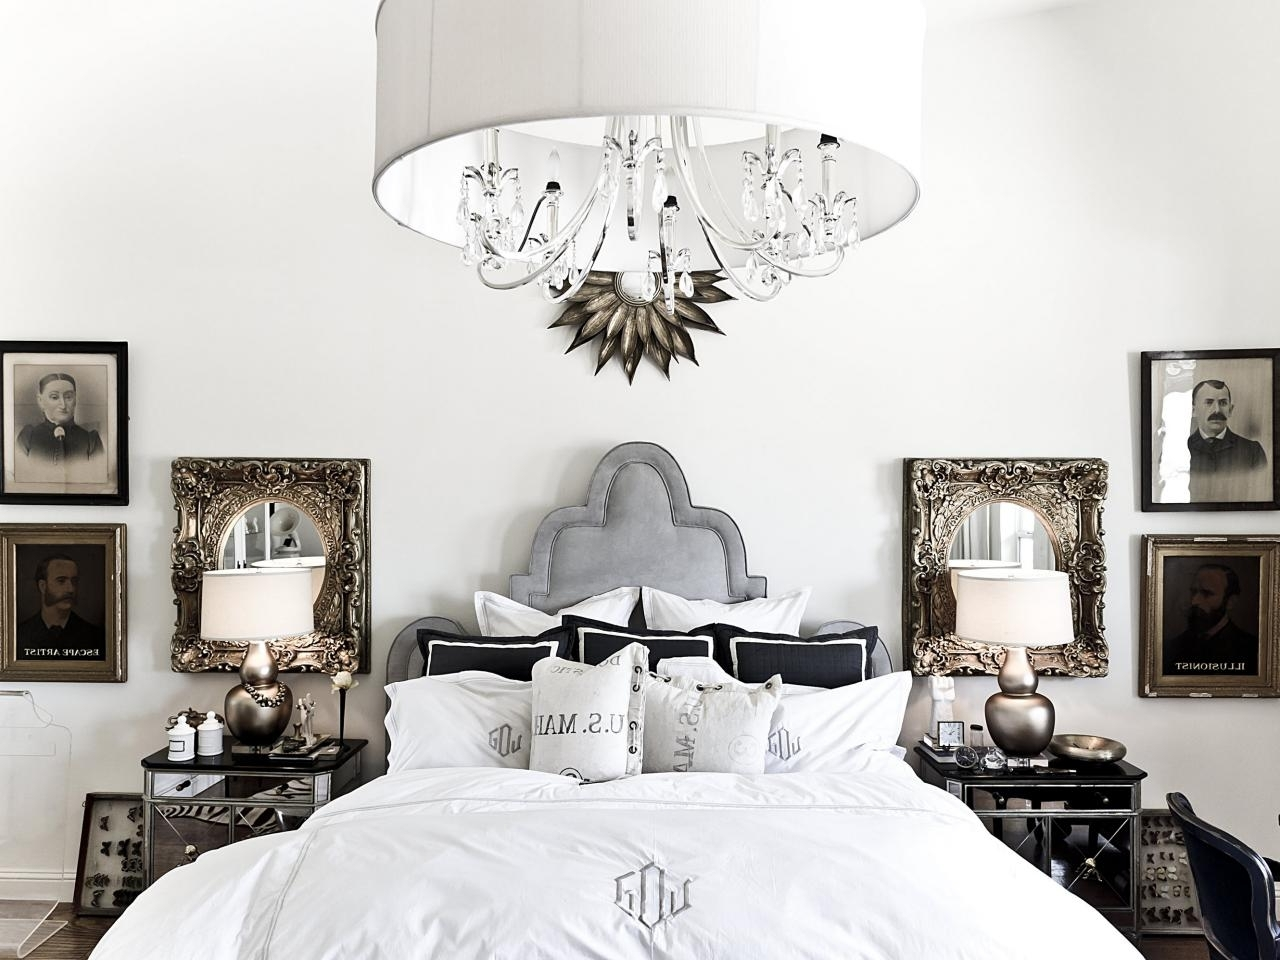 Current Chandelier Night Stand Lamps Throughout Bedroom Chandelier Lighting (View 3 of 20)